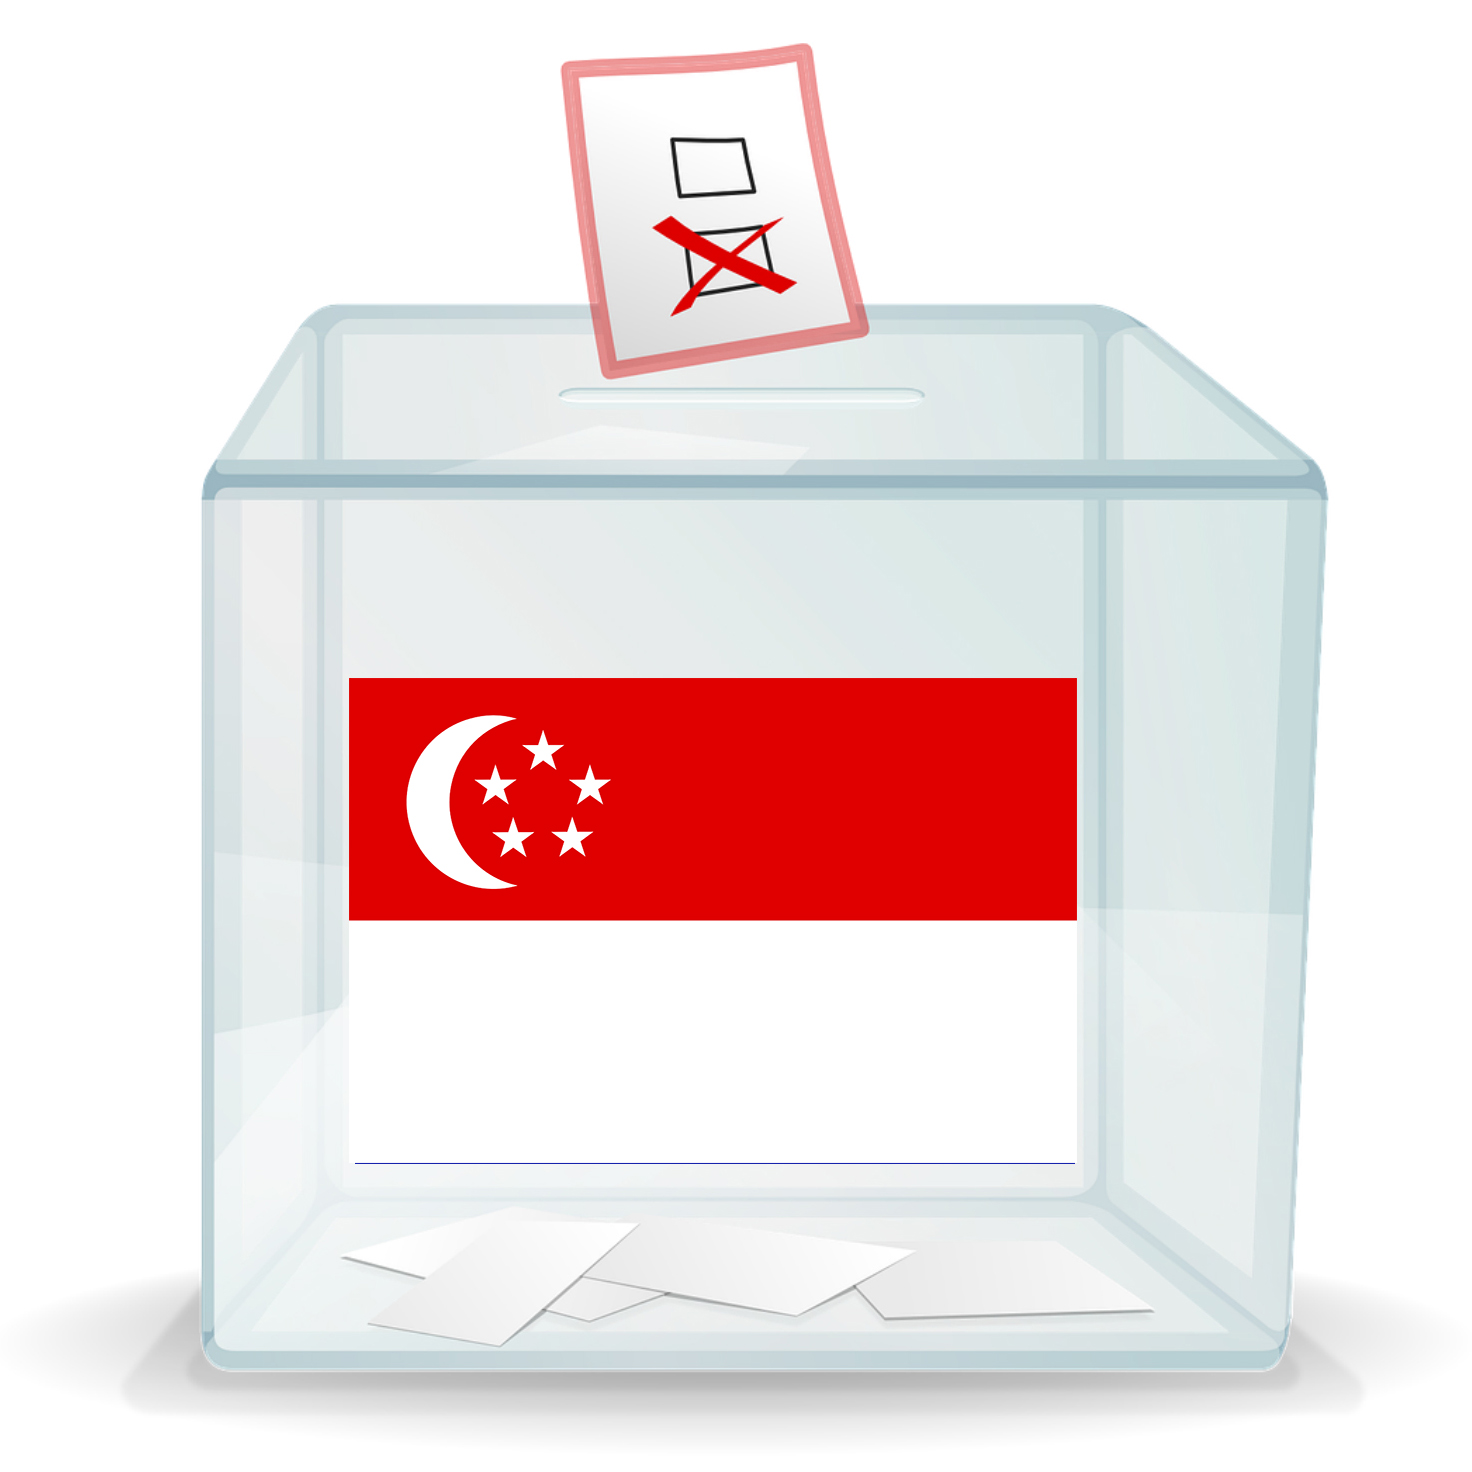 A ballot box with a flag from Singapore on the front.